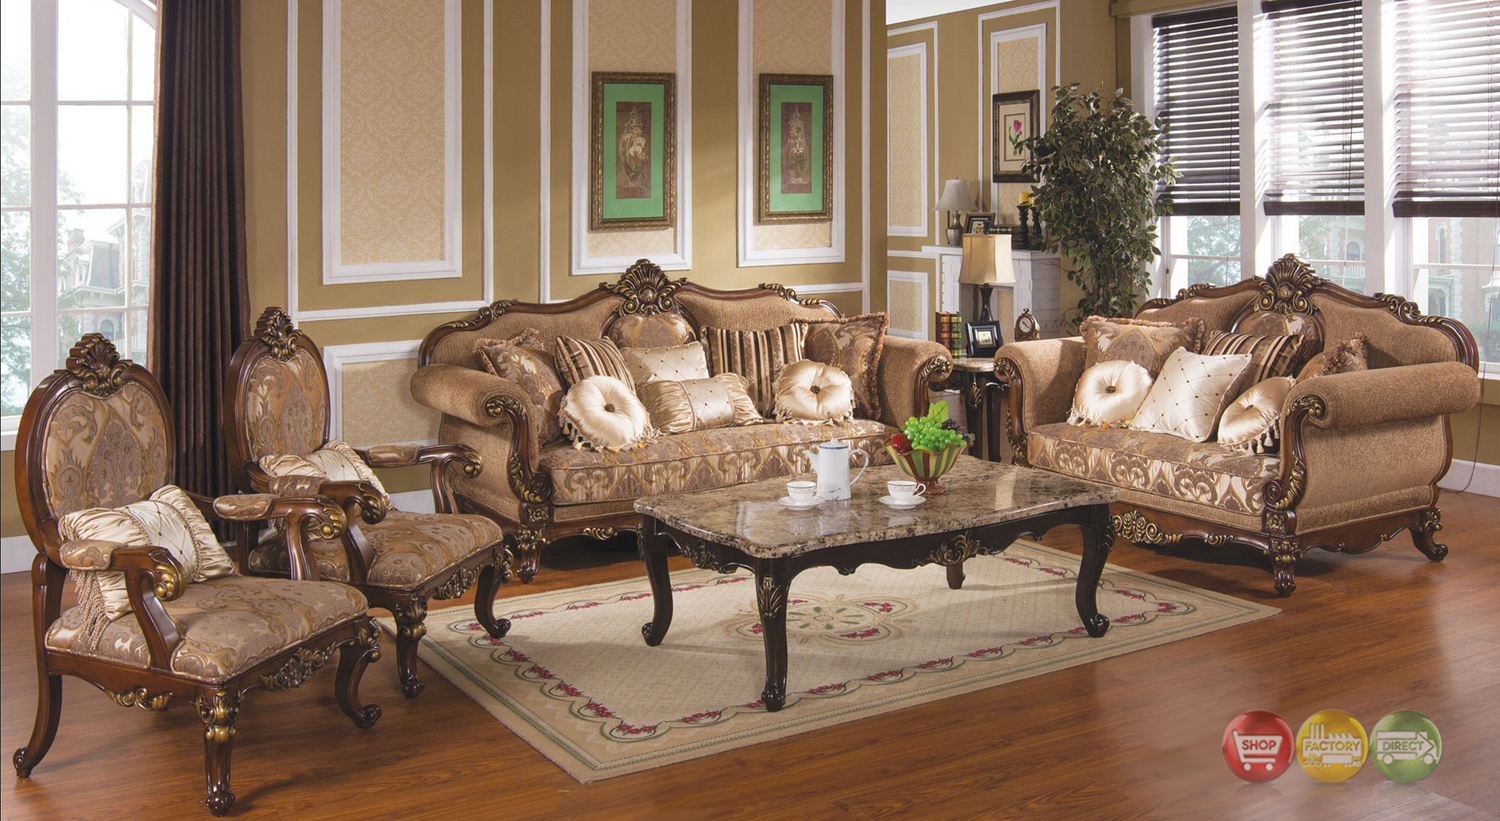 Michael Amini Cortina Luxury Bedroom Furniture Set Honey Walnut Finish By  AICO